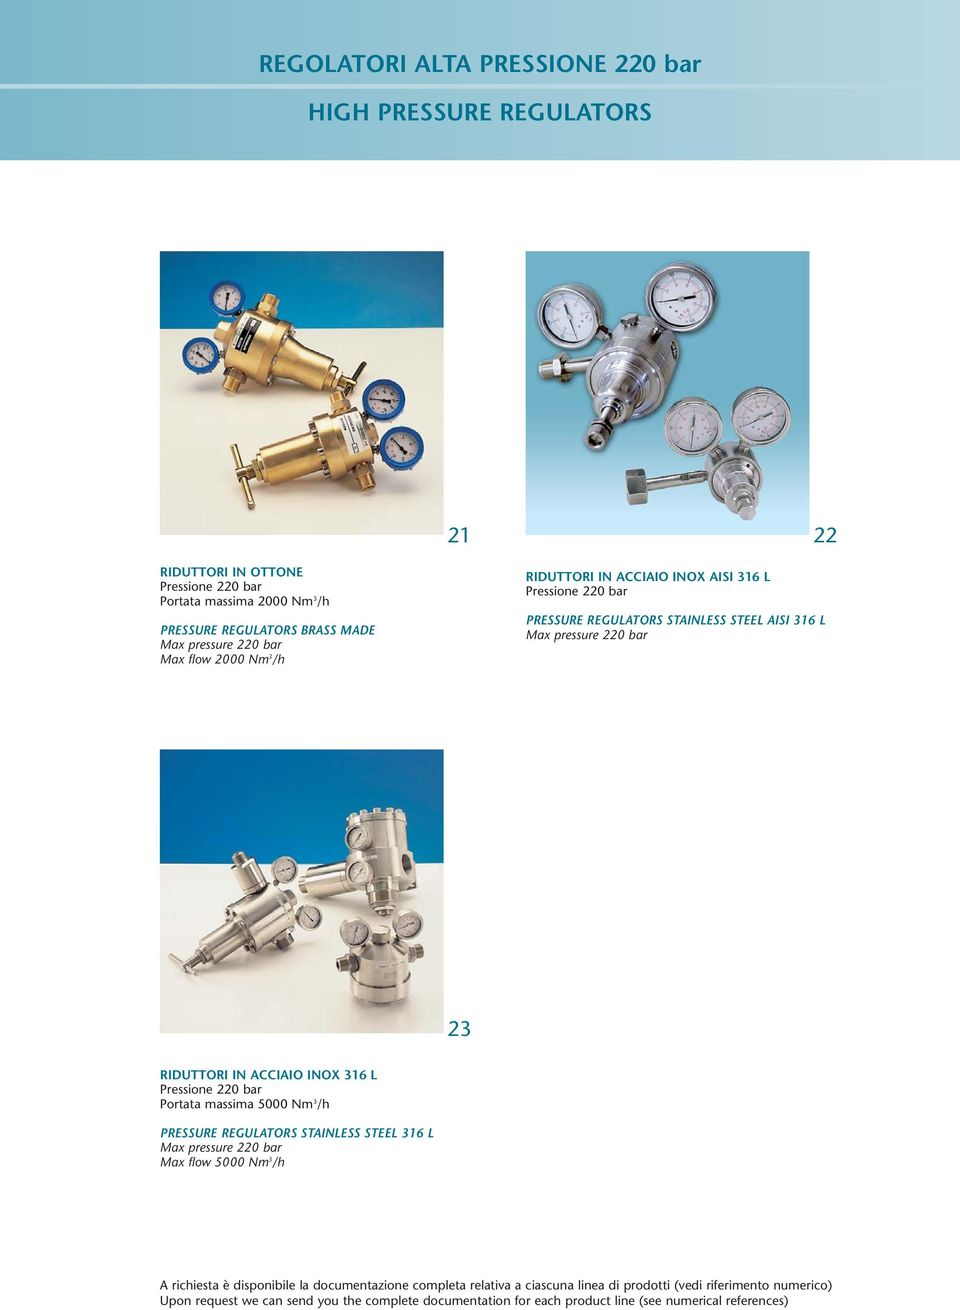 Pressione 220 bar PRESSURE REGULATORS STAINLESS STEEL AISI 316 L Max pressure 220 bar 23 RIDUTTORI IN ACCIAIO INOX 316 L